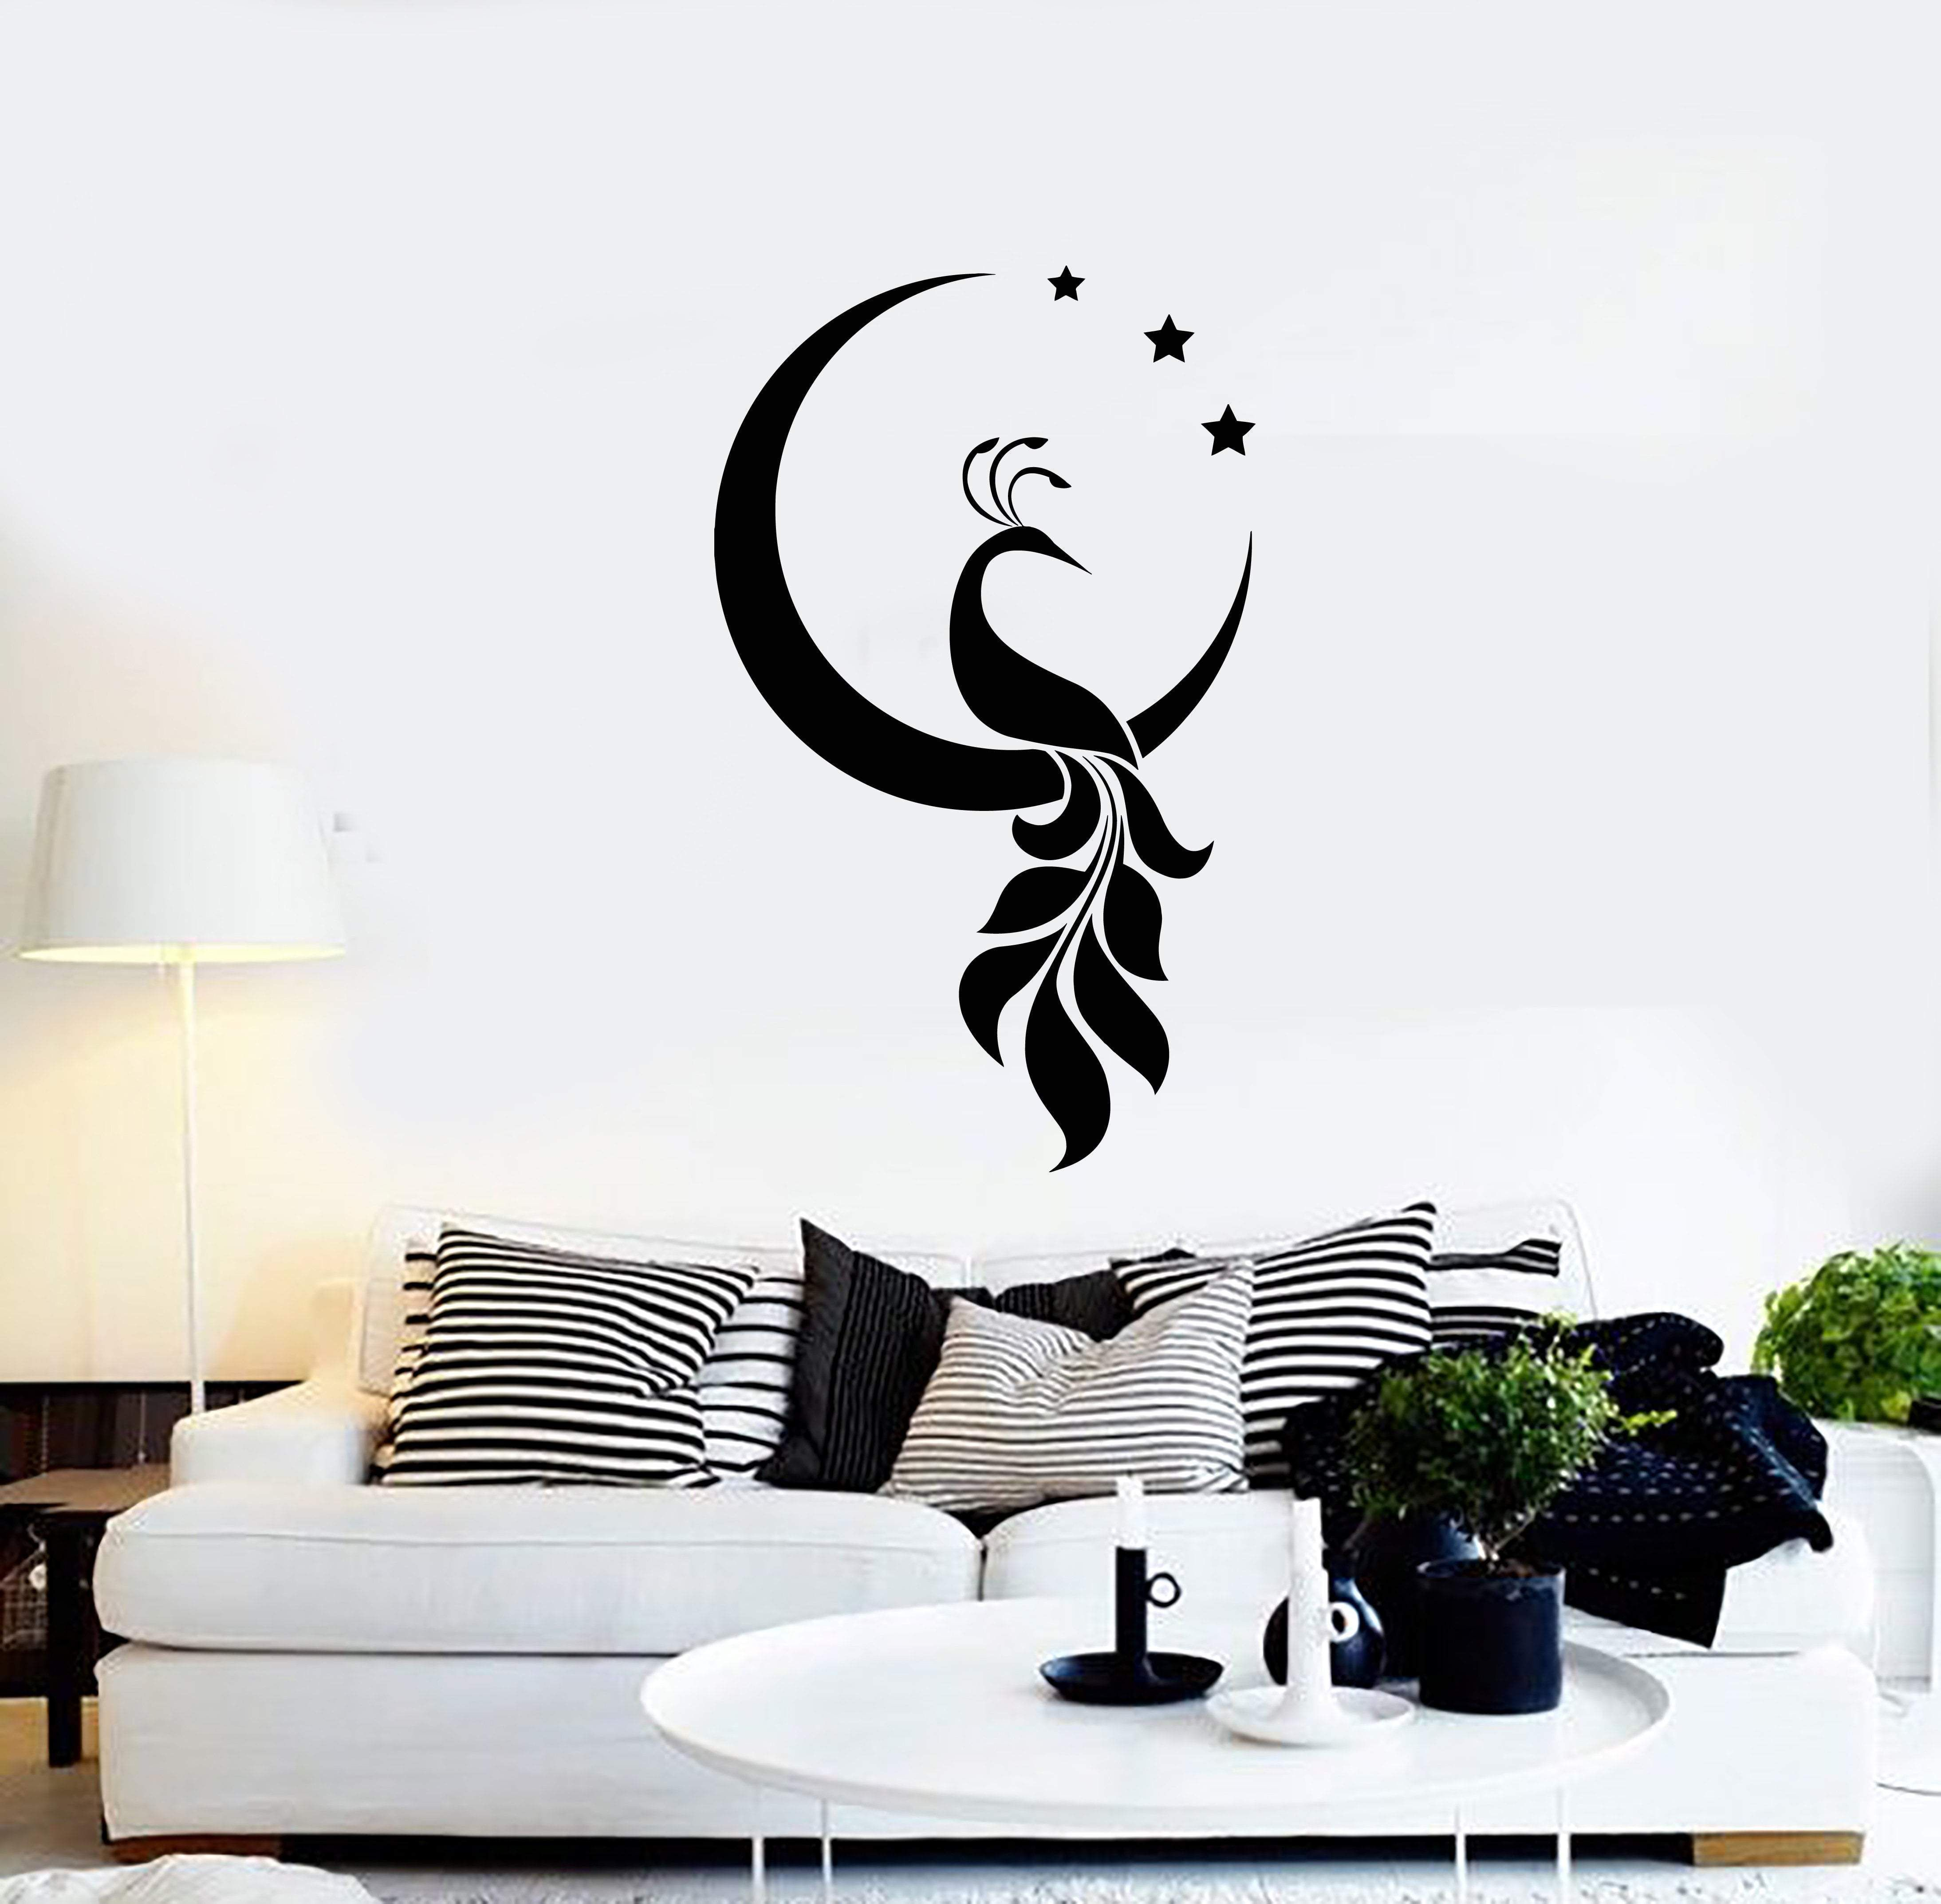 Vinyl Wall Decal Peacock Bird Crescent Stars Decor Room Home Interior Stickers Mural Ig5699 Room Wall Painting Wall Painting Decor Diy Wall Painting